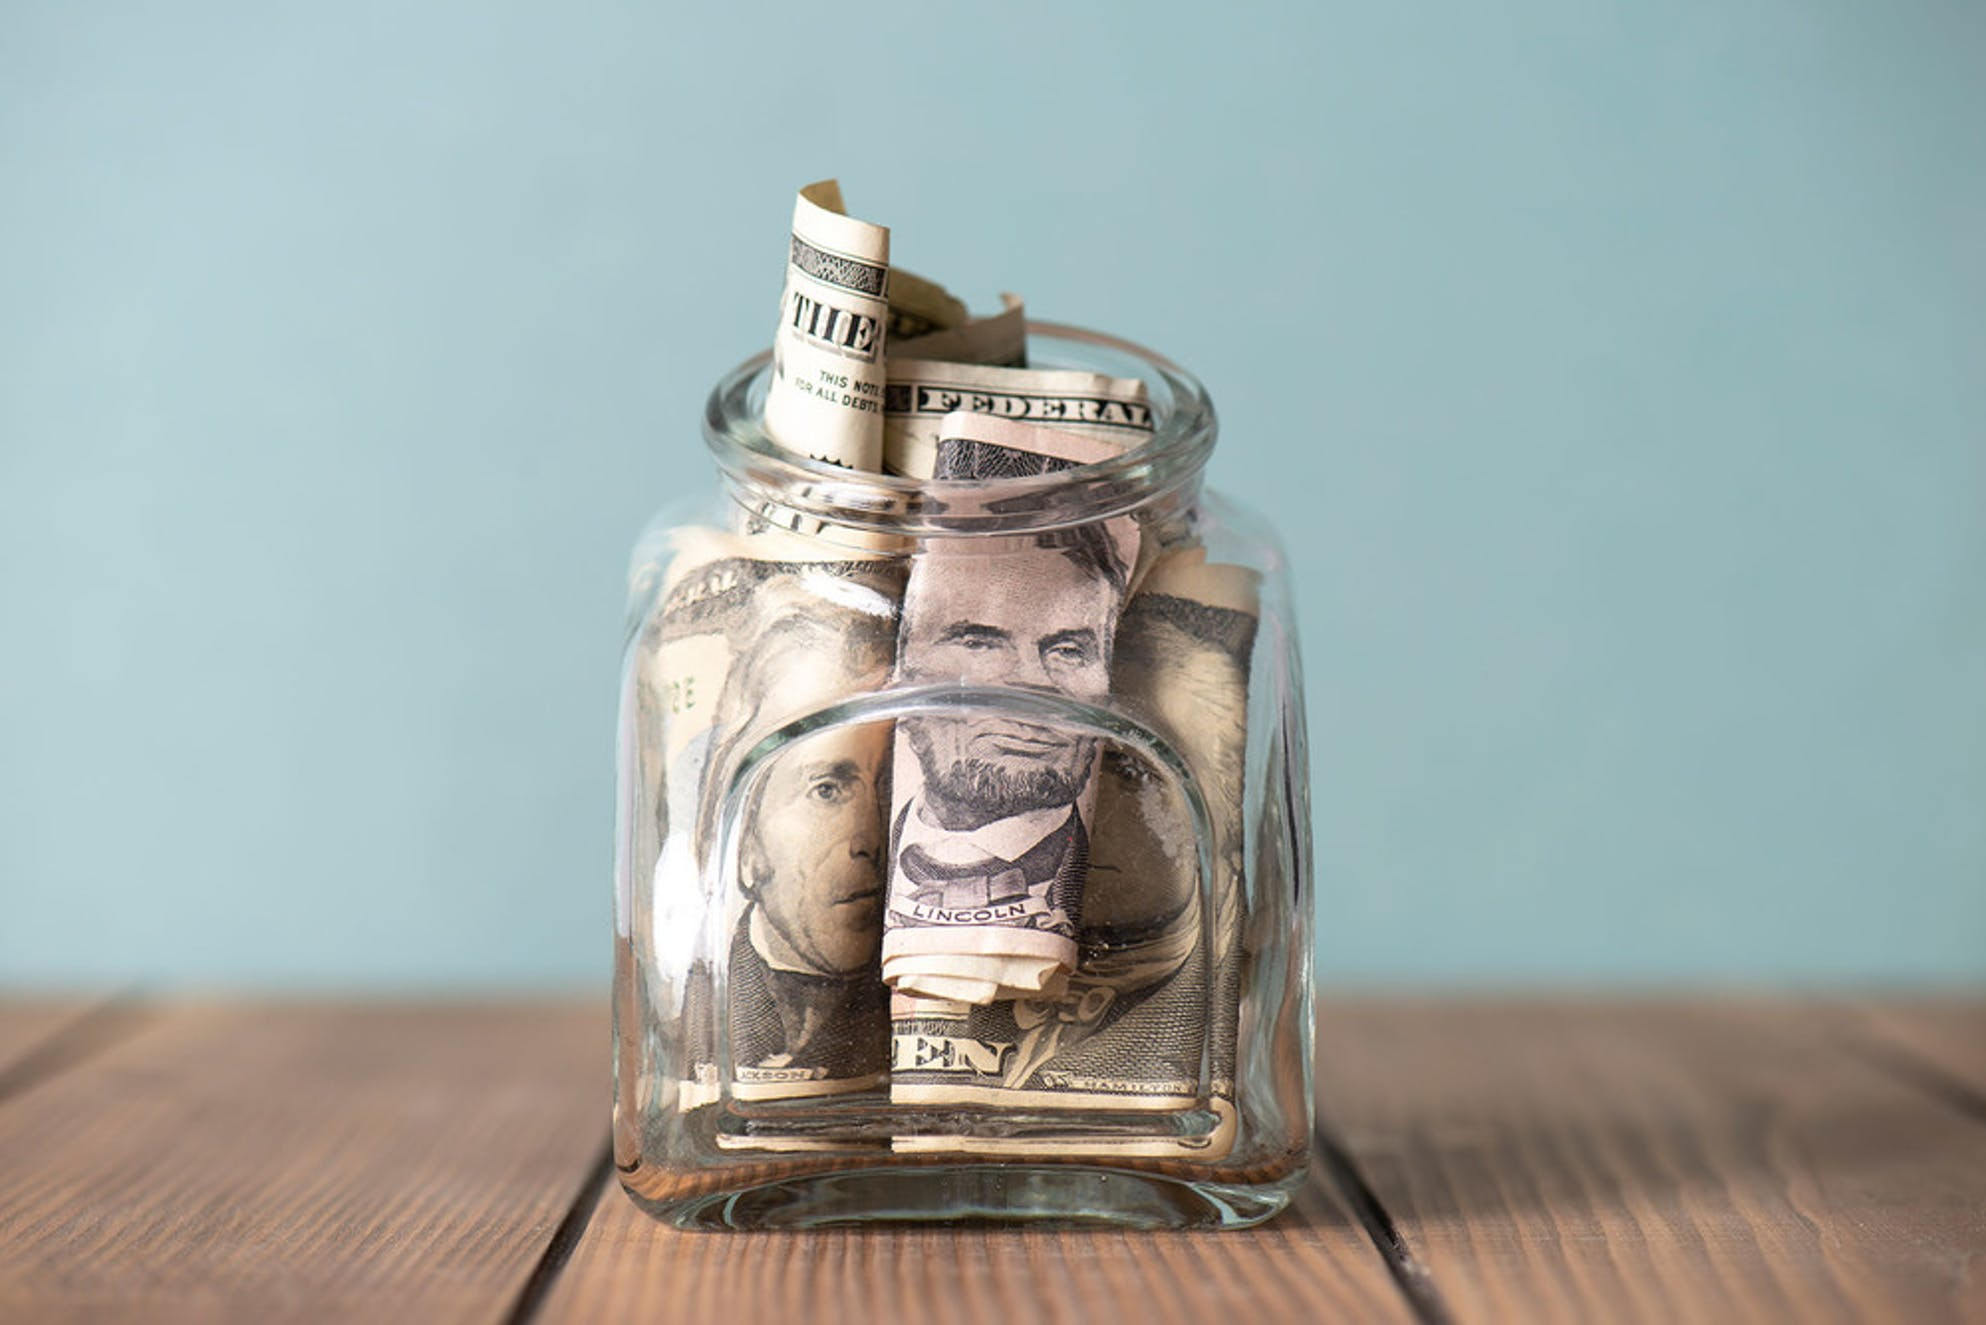 What to do with your tax refund: put it in your emergency fund